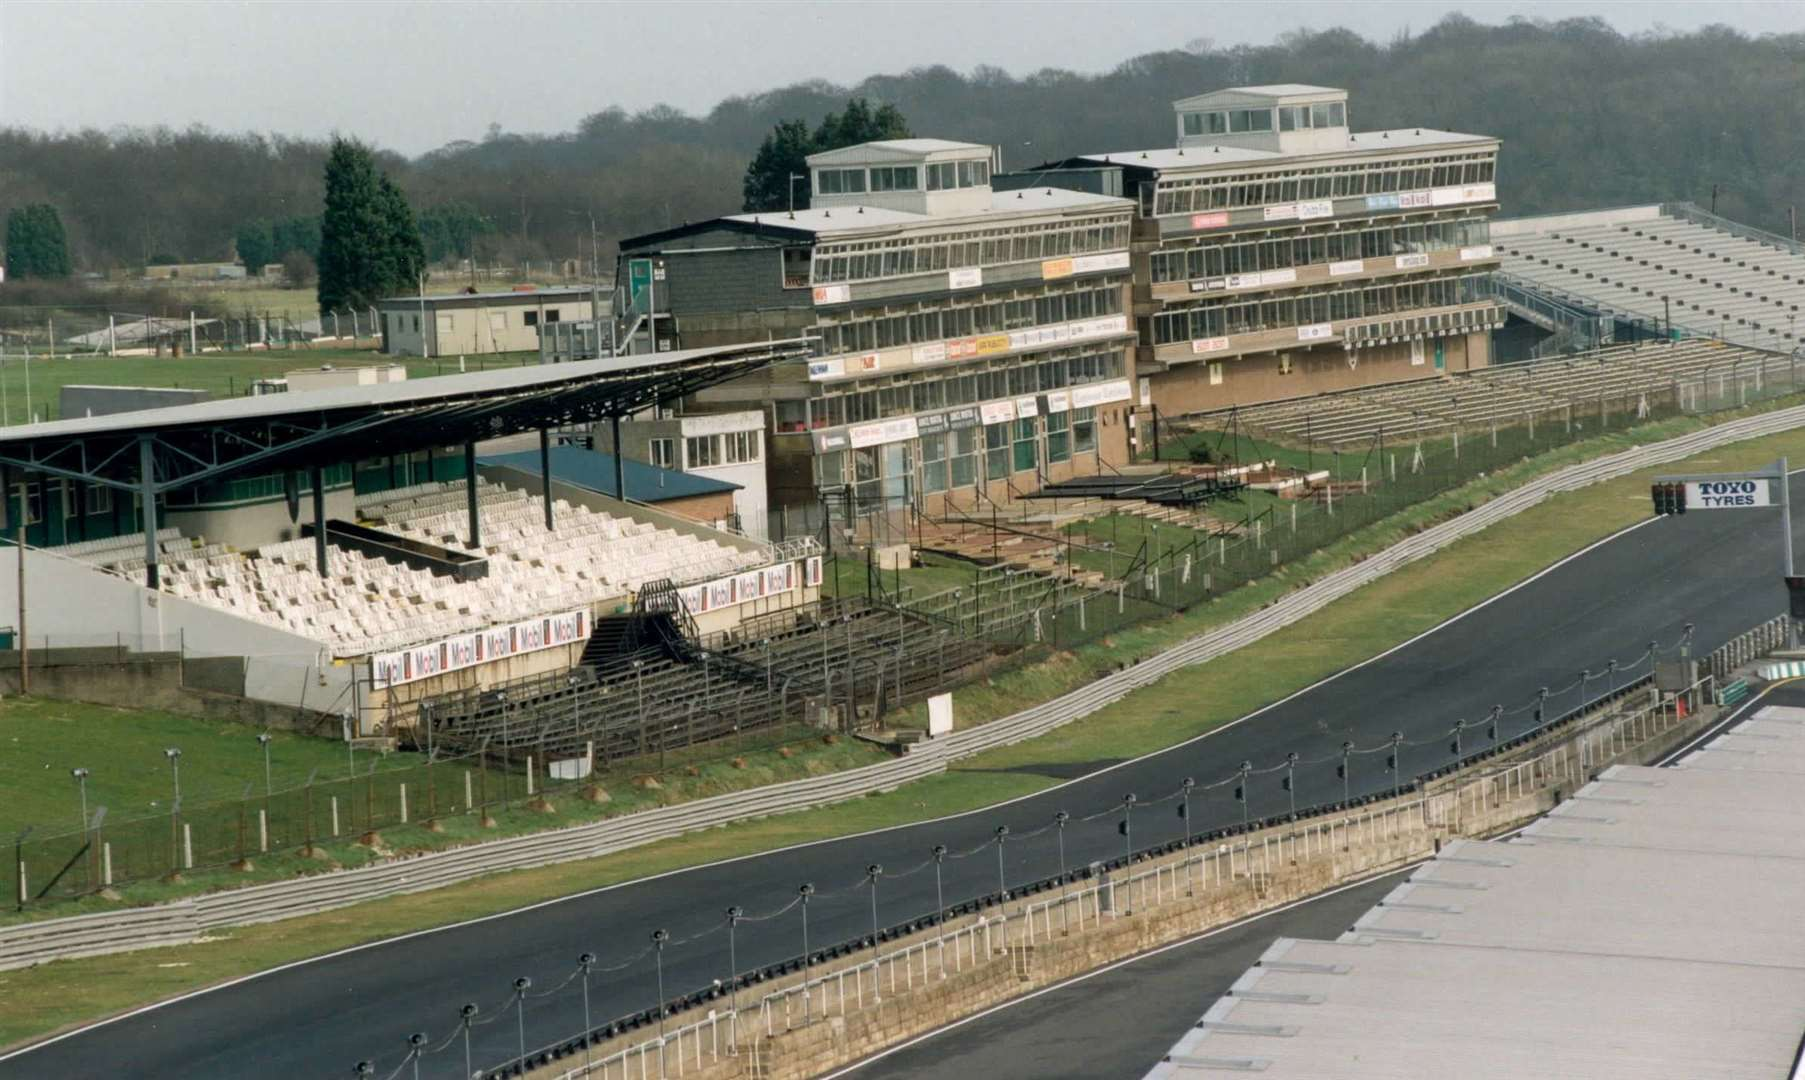 The Brabham Straight at Brands Hatch pictured in February 1997